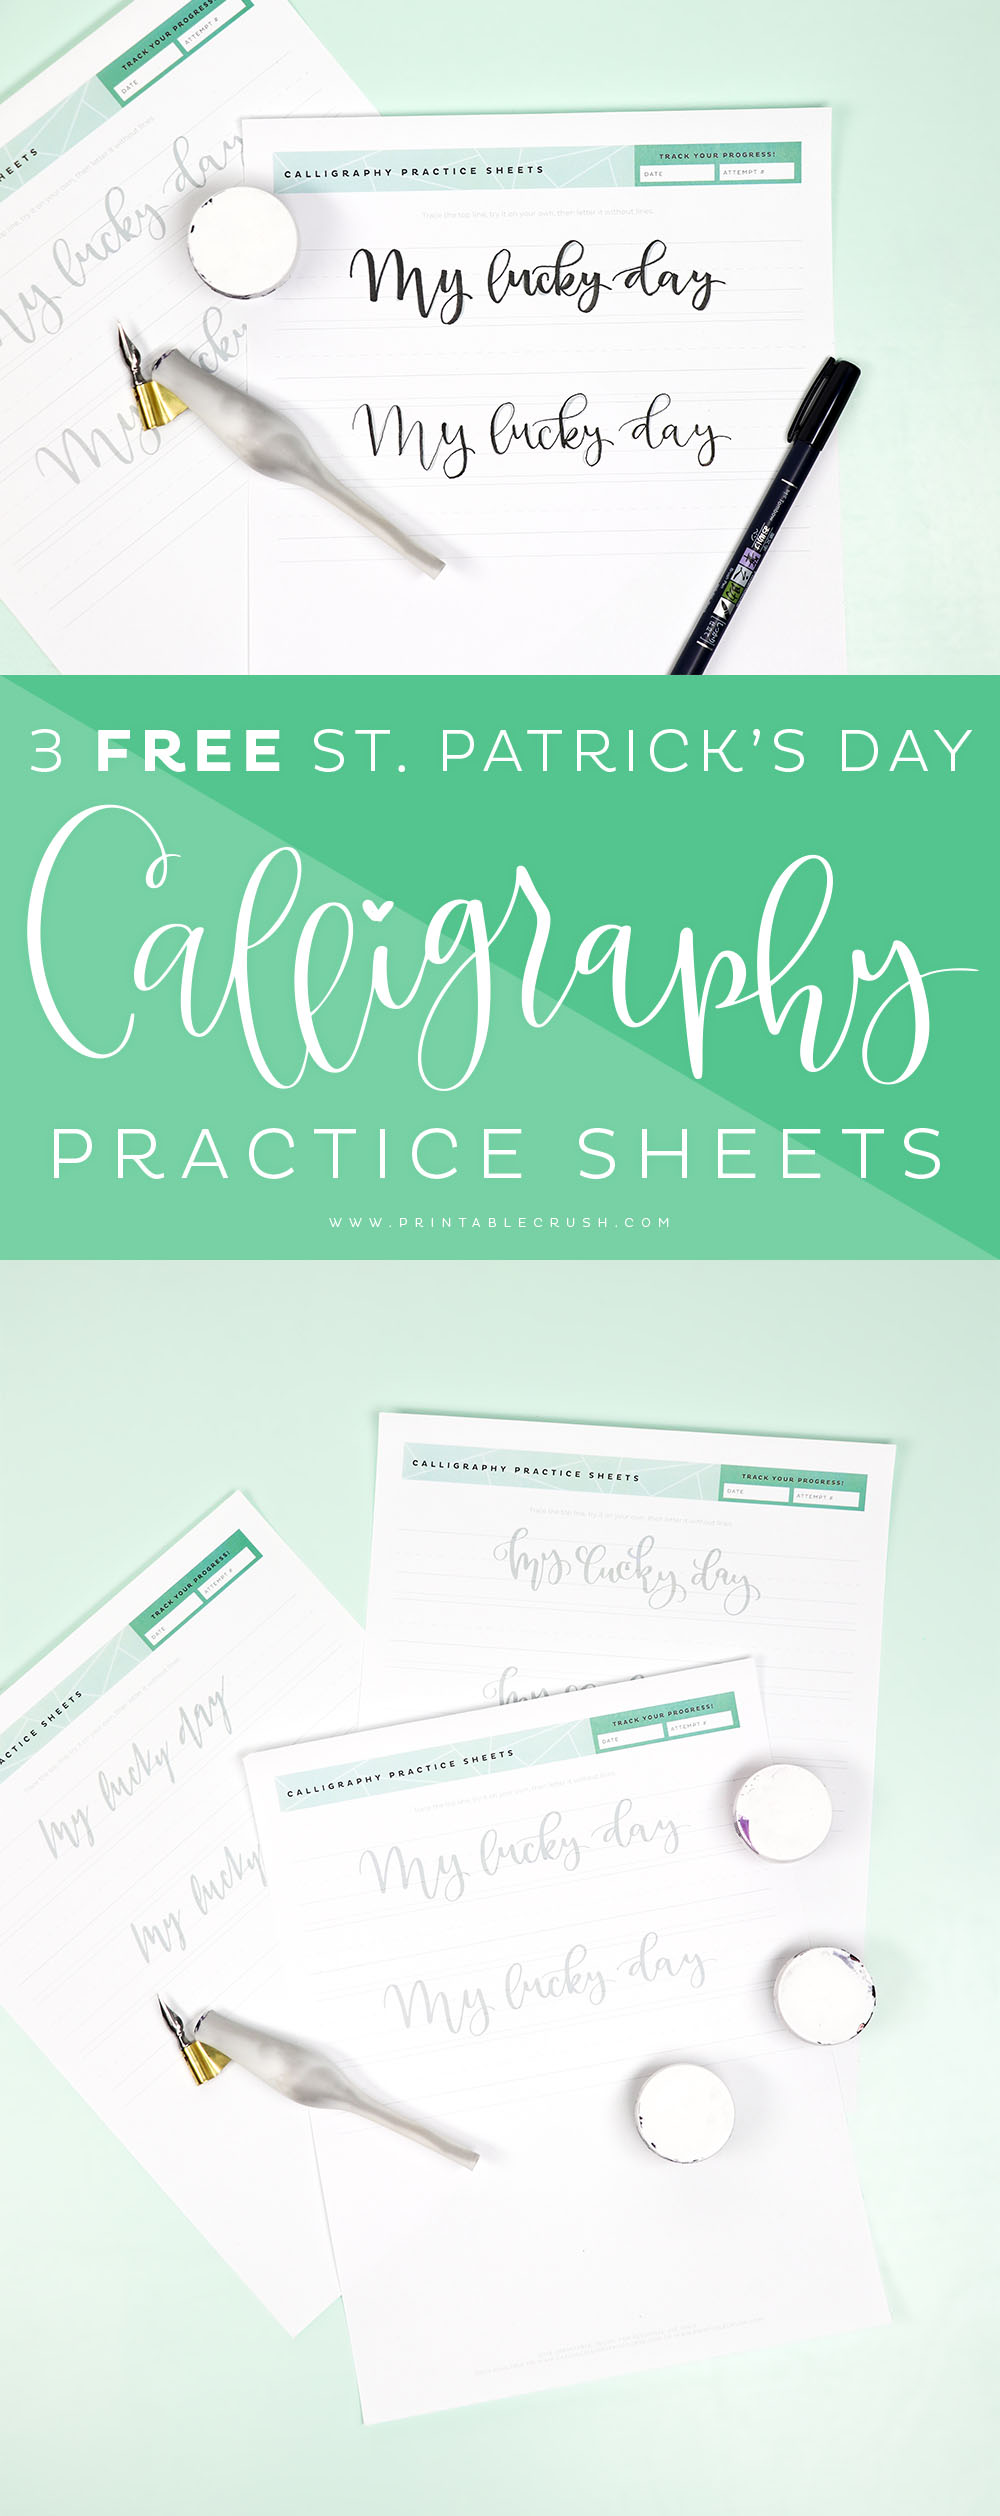 Practice your calligraphy with these 3 FREE St. Patrick's Day Calligraphy Practice Sheets! #casualcalligraphy #calligraphy #moderncalligraphy #calligraphypen #tombowpro #stpatricksday